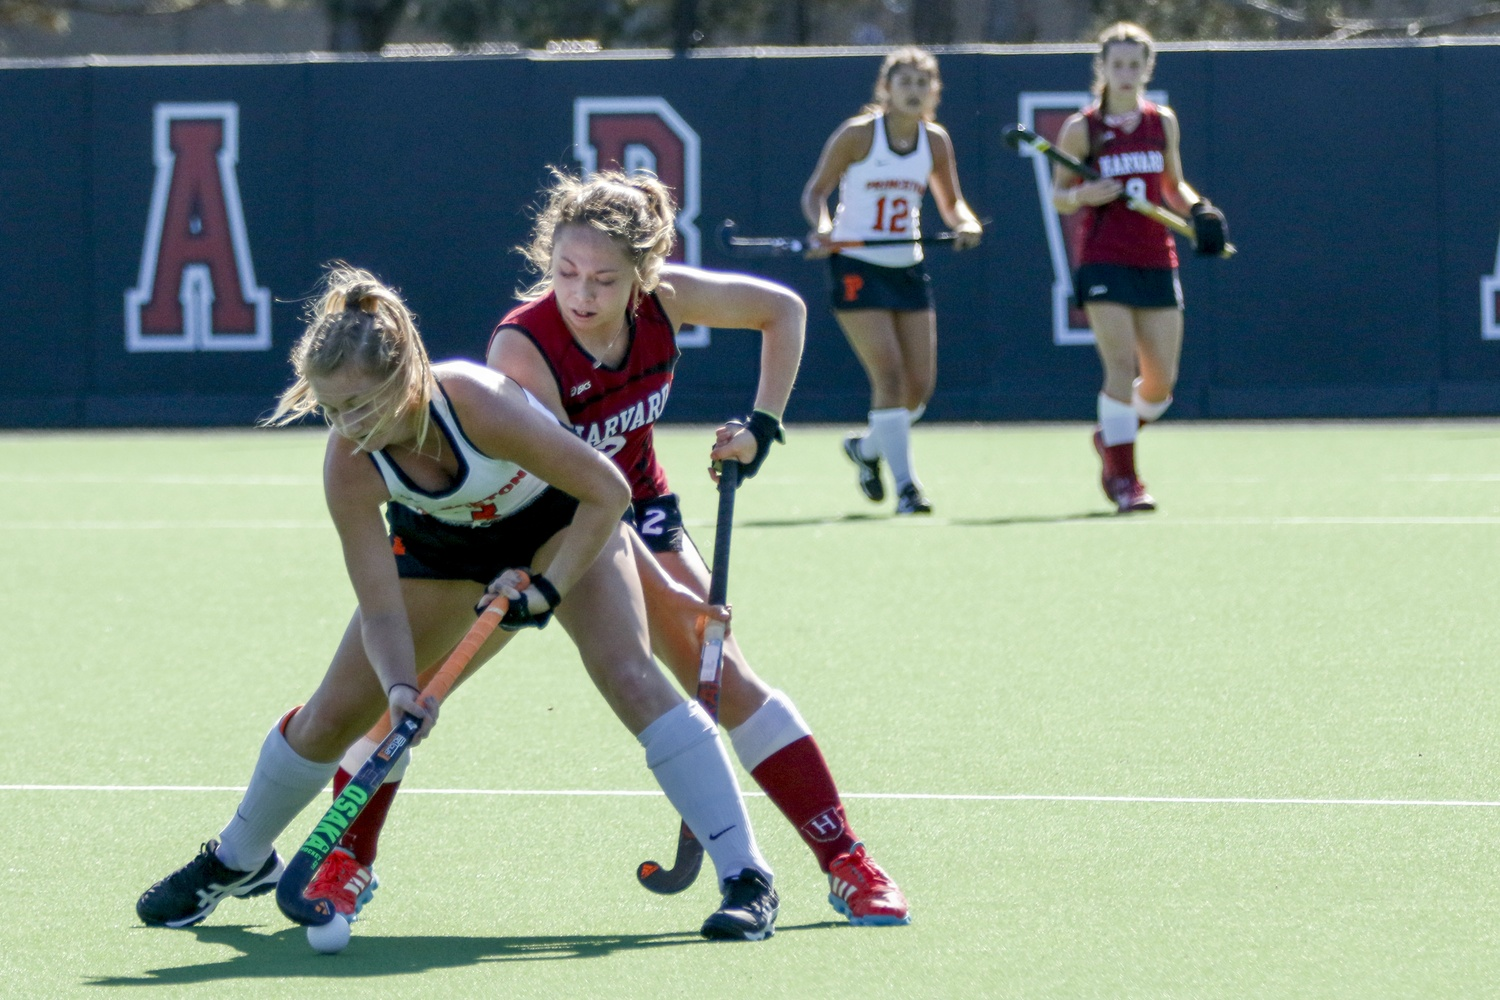 Against No. 18 Maine, Maddie Earle earned her first ever hat trick — scoring on all three targets.